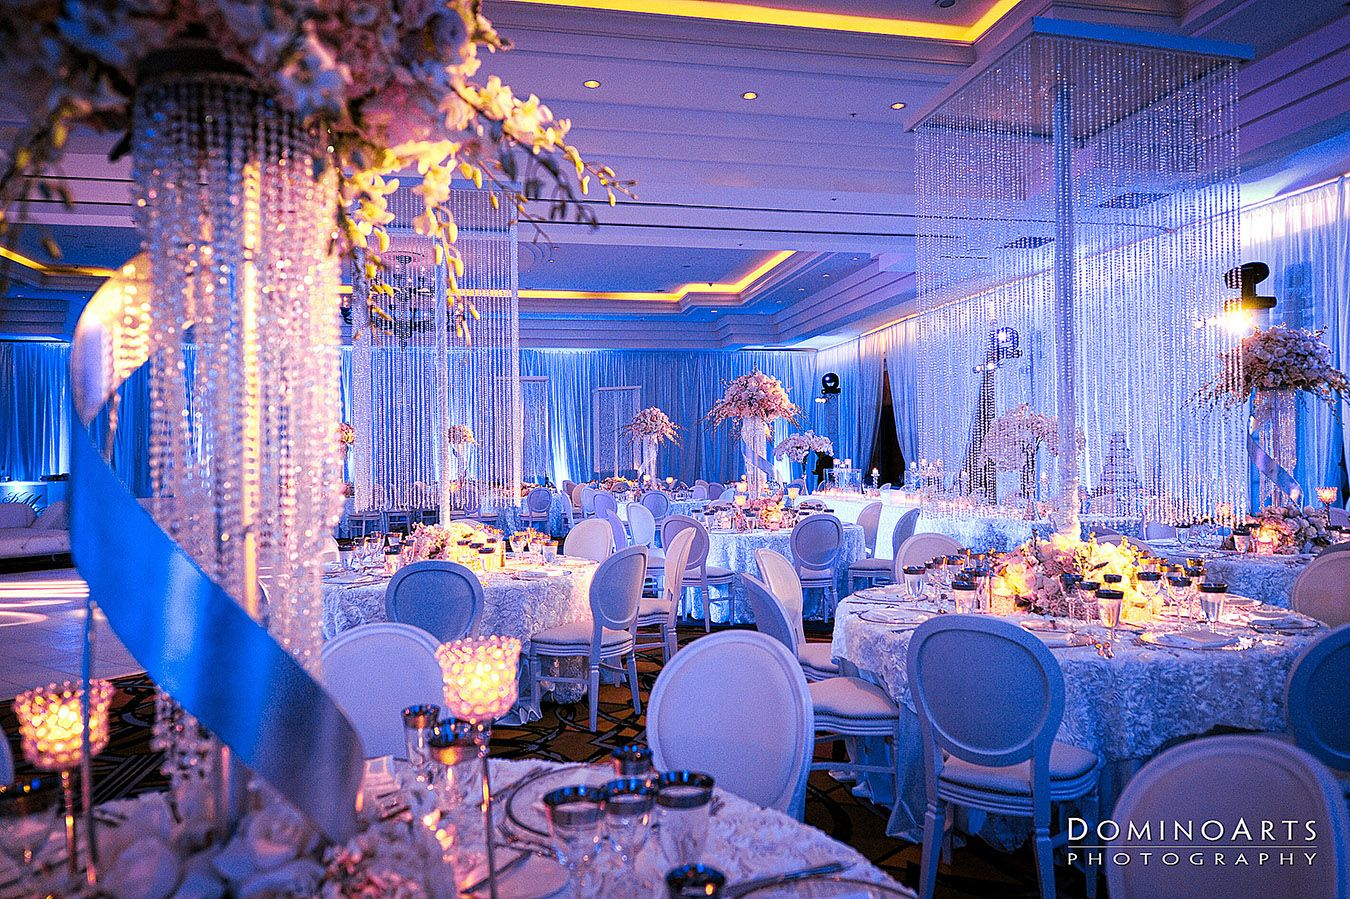 Wedding reception room weddings ideas pinterest weddingideas dare to dream qual quest tiffany blue and purple wedding decorations junglespirit